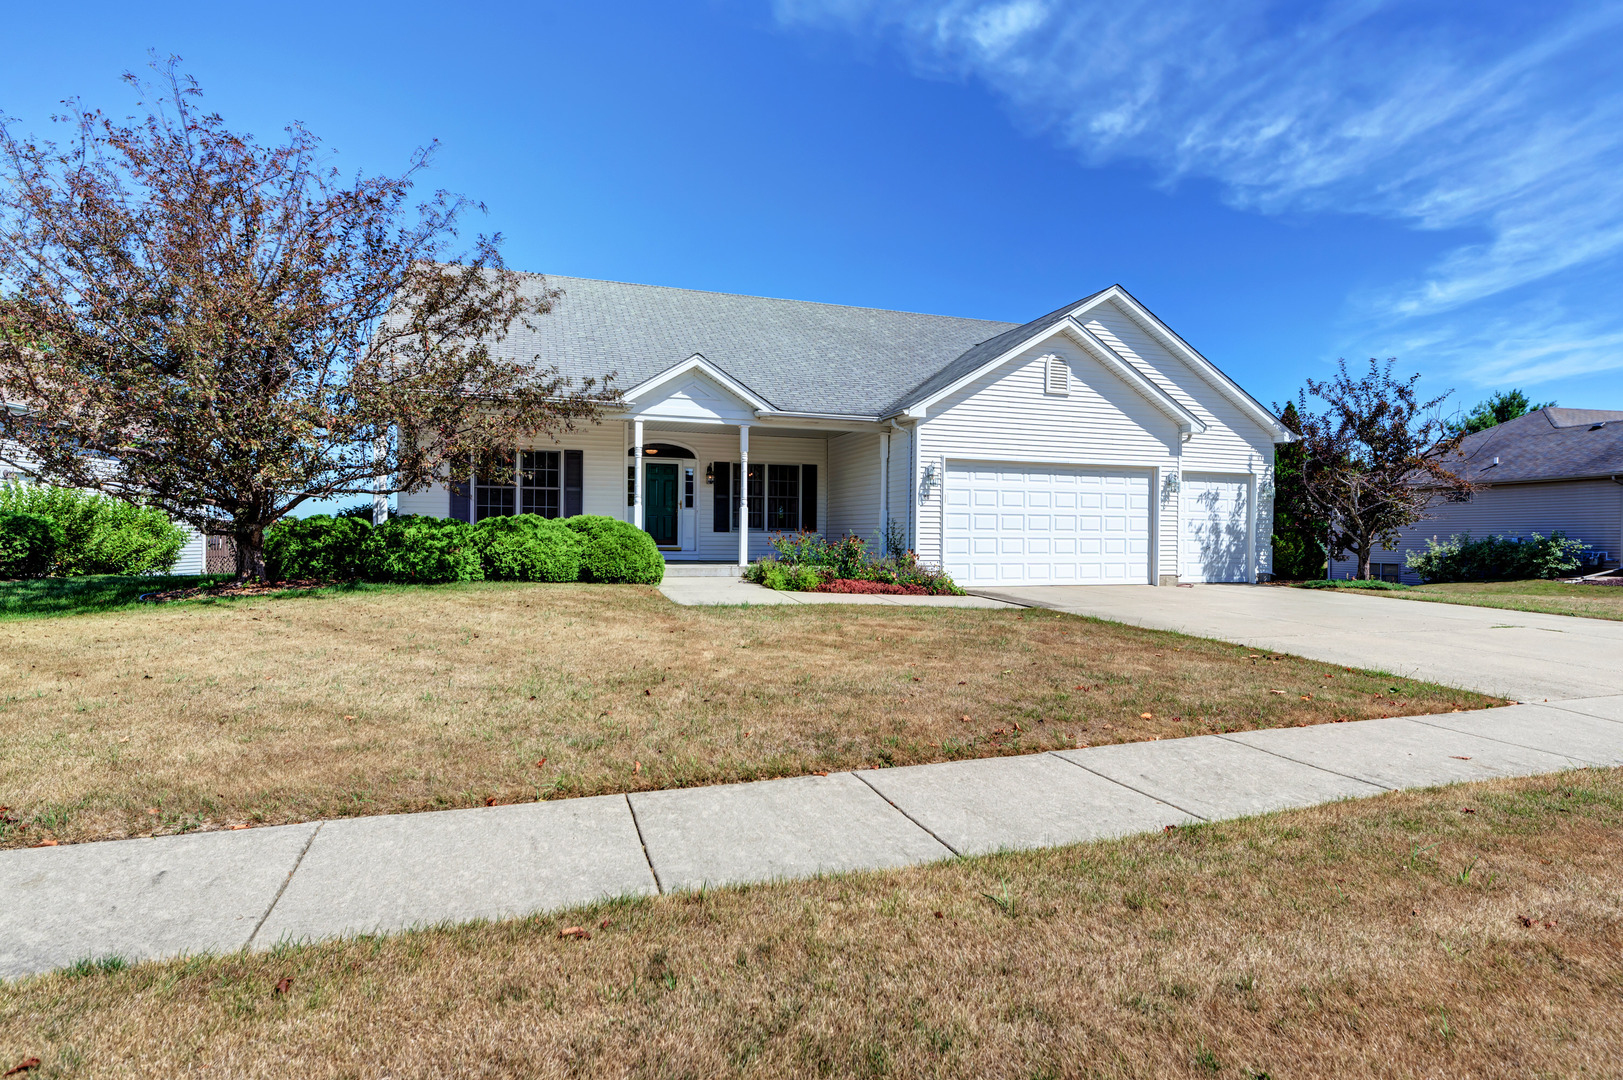 Photo for 604 Woodside Terrace, Hampshire, IL 60140 (MLS # 10845465)